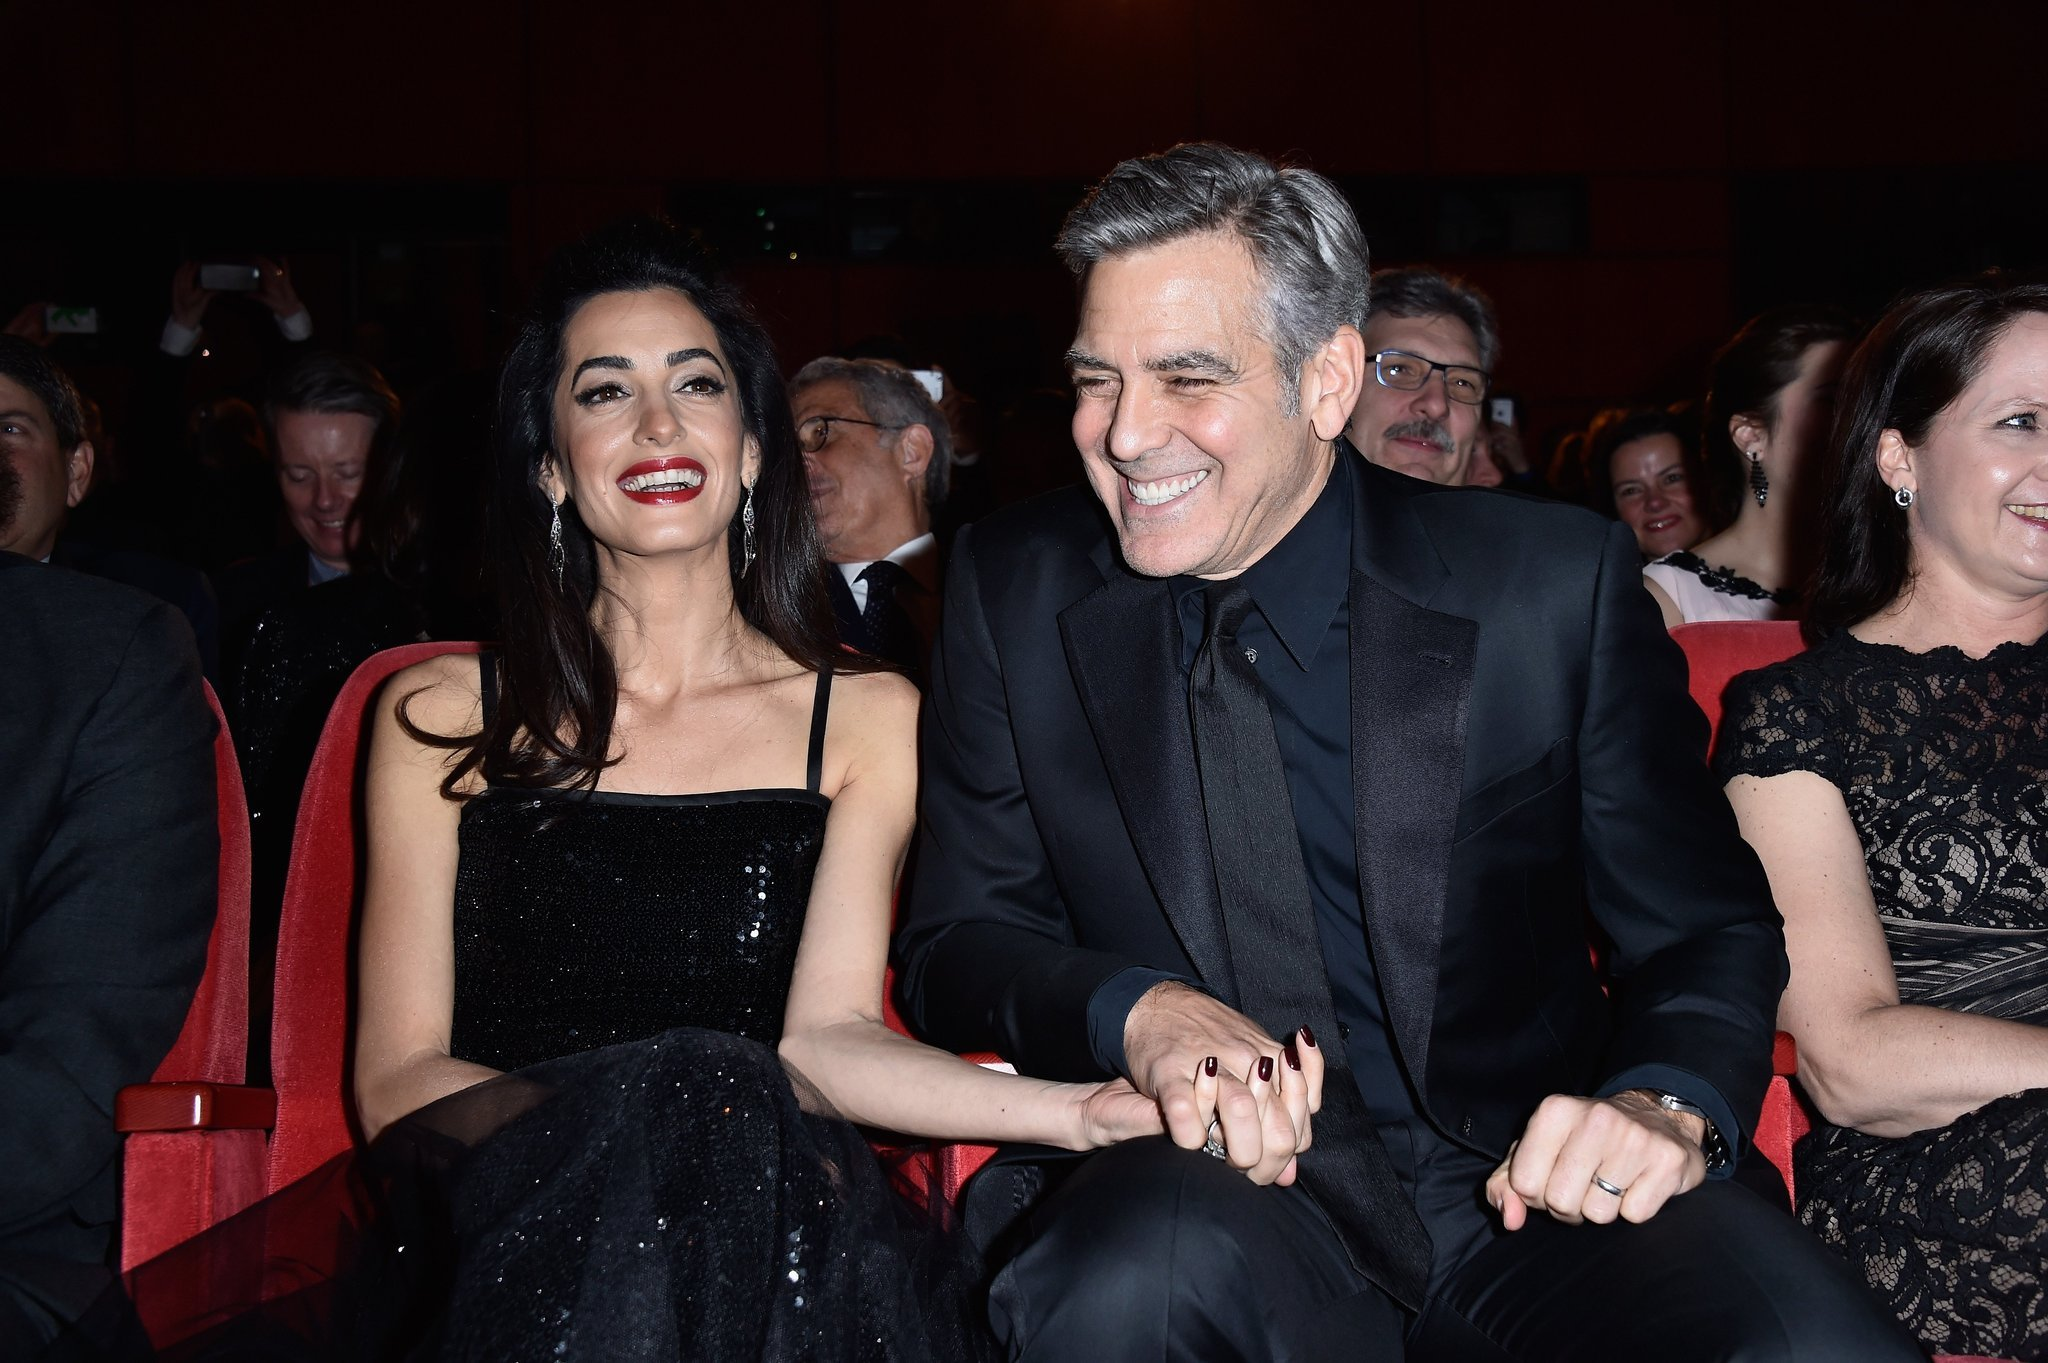 George Clooney's father can't stop gushing about his